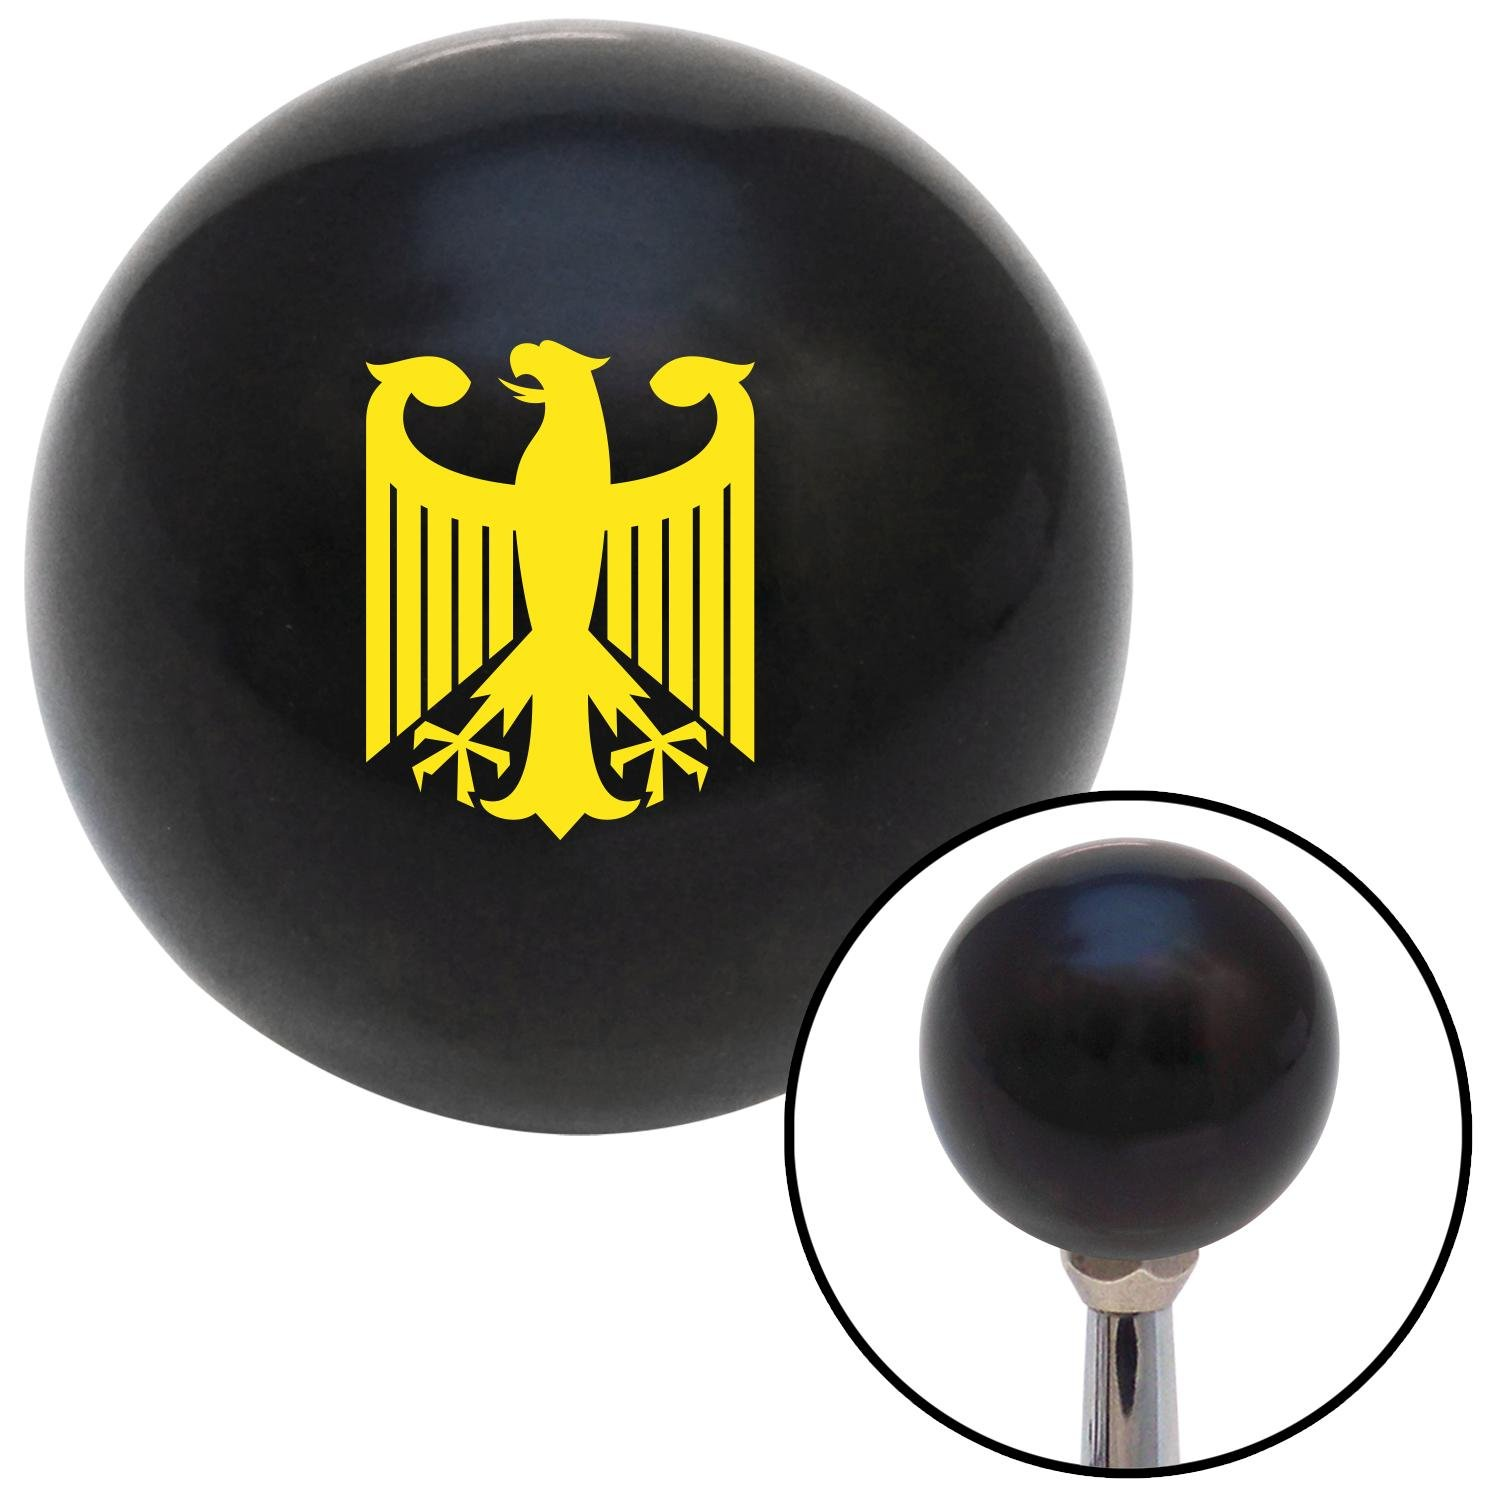 Yellow Eagle Coat of Arms American Shifter 105434 Black Shift Knob with M16 x 1.5 Insert